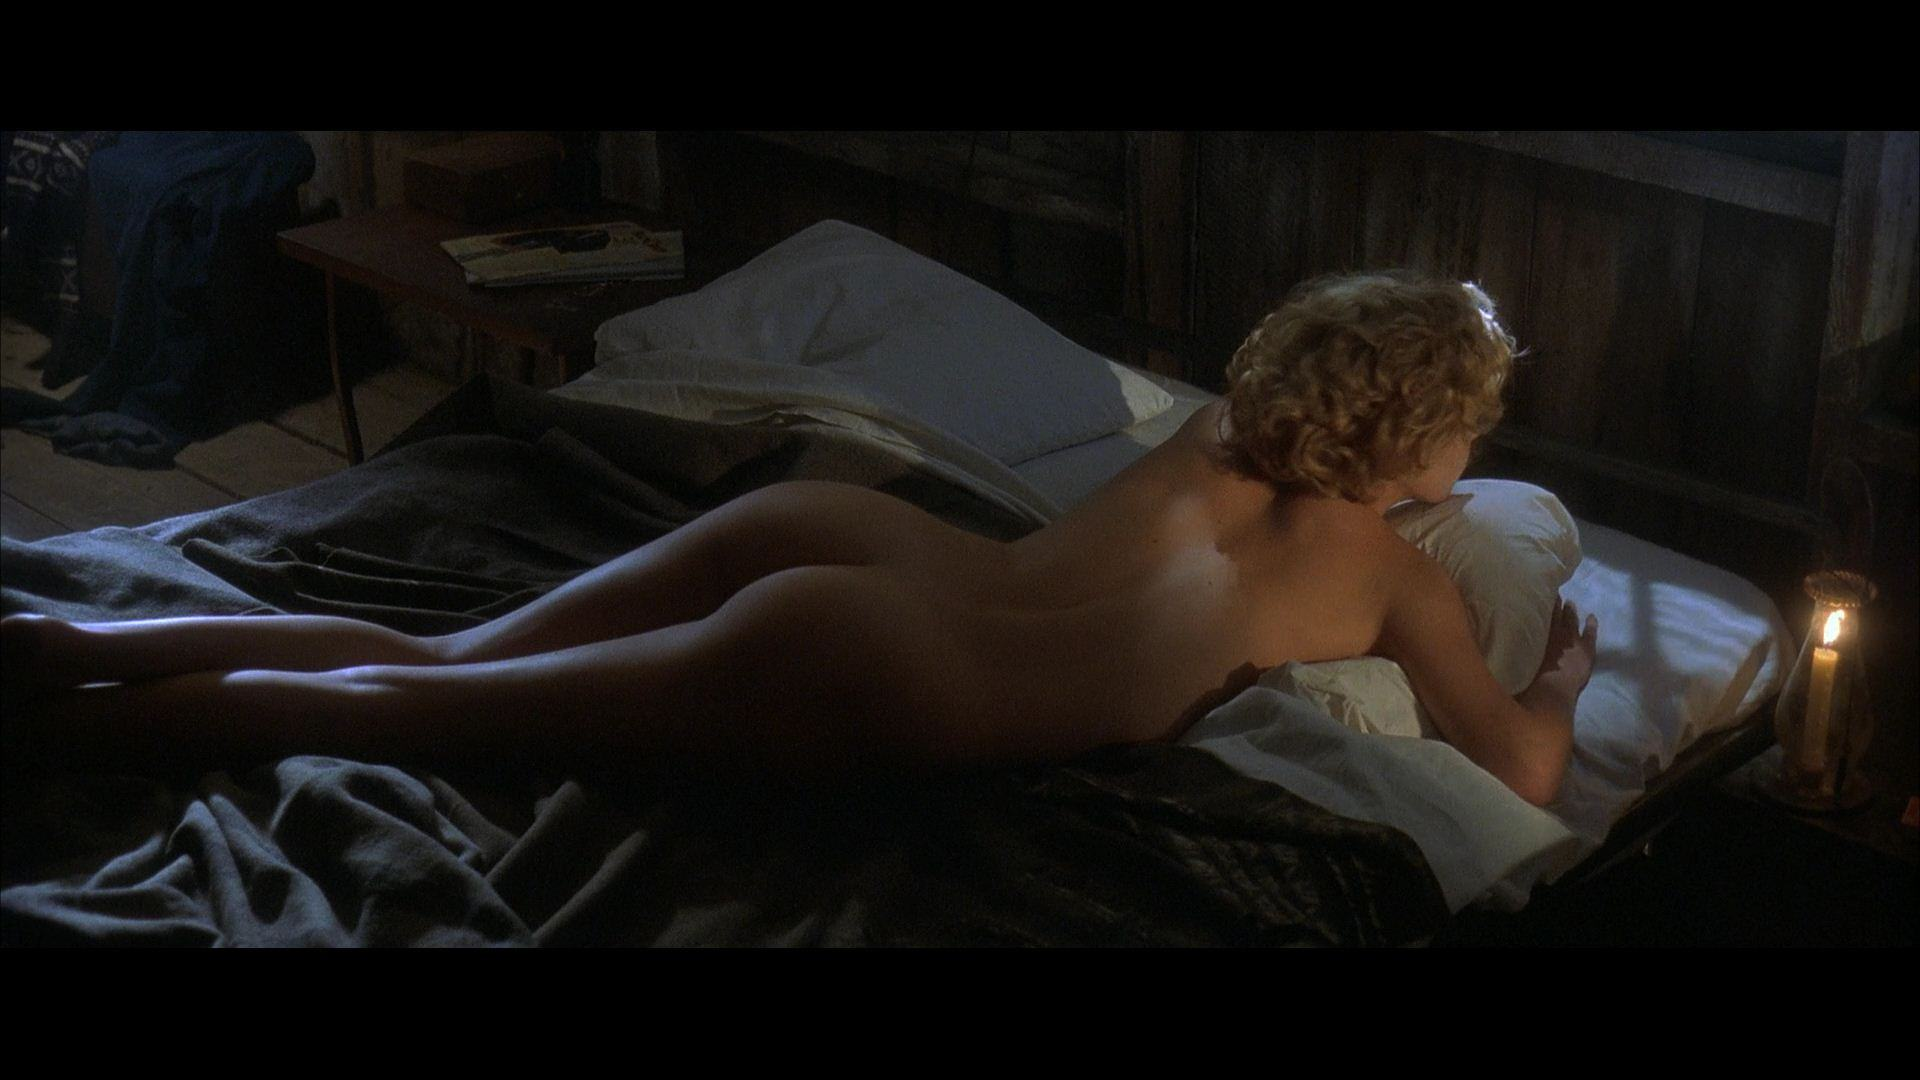 Who wouldn't kiss the feet of a naked charlize theron